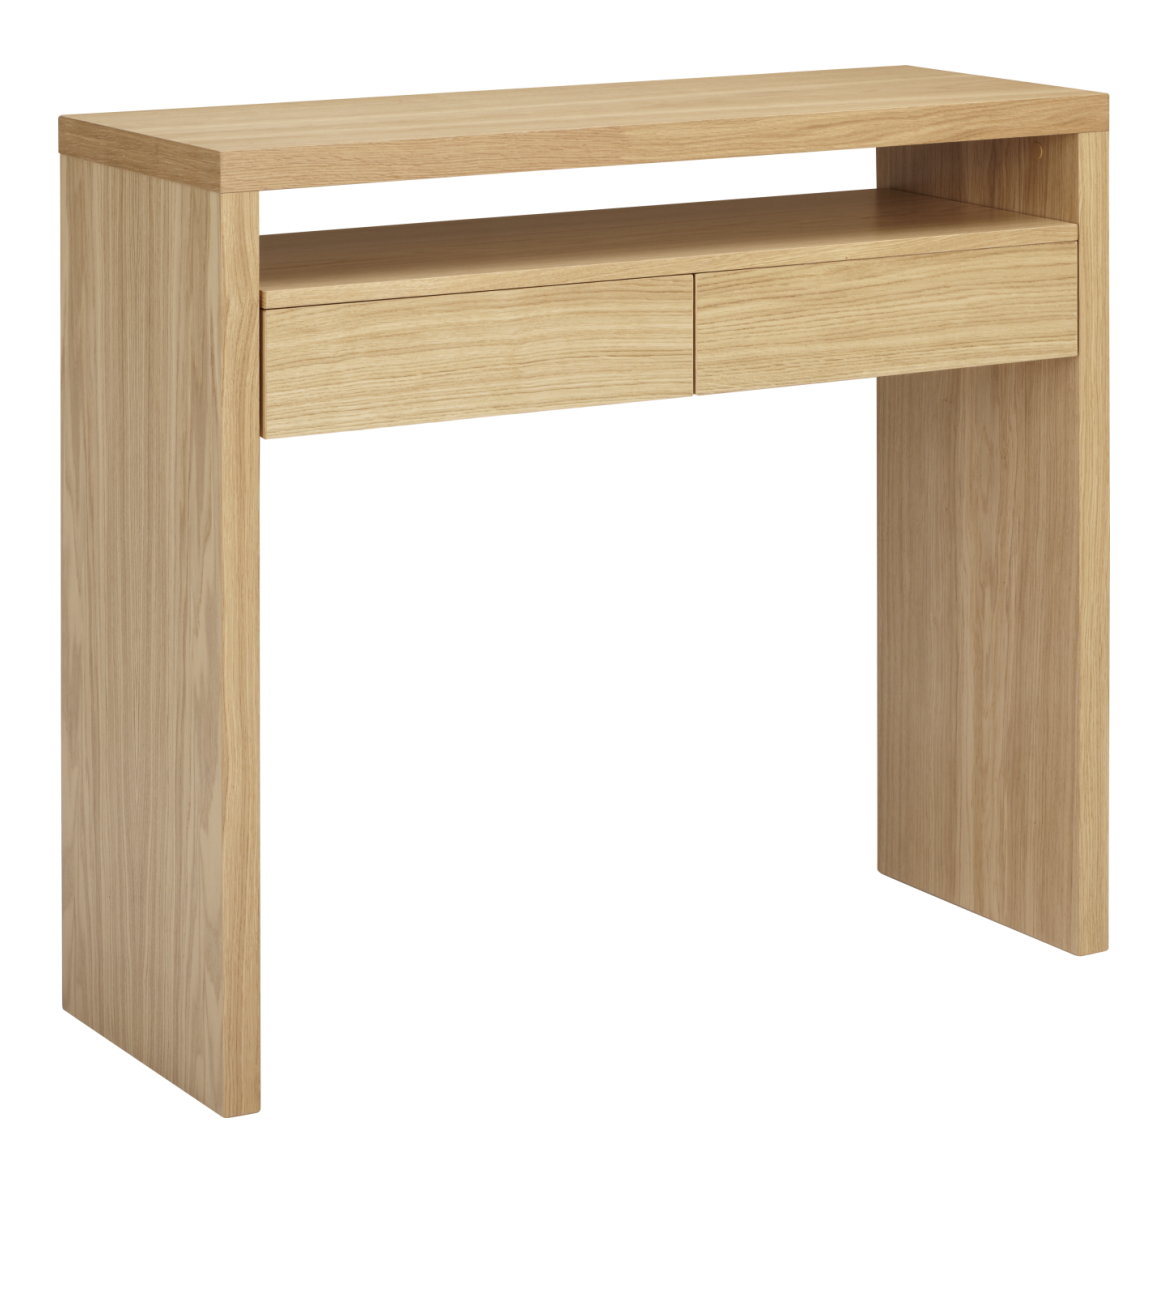 Table Ronde Modulable Charmant atwood Consolas Natural Madera 100x35xh88 Of 30 Inspirant Table Ronde Modulable